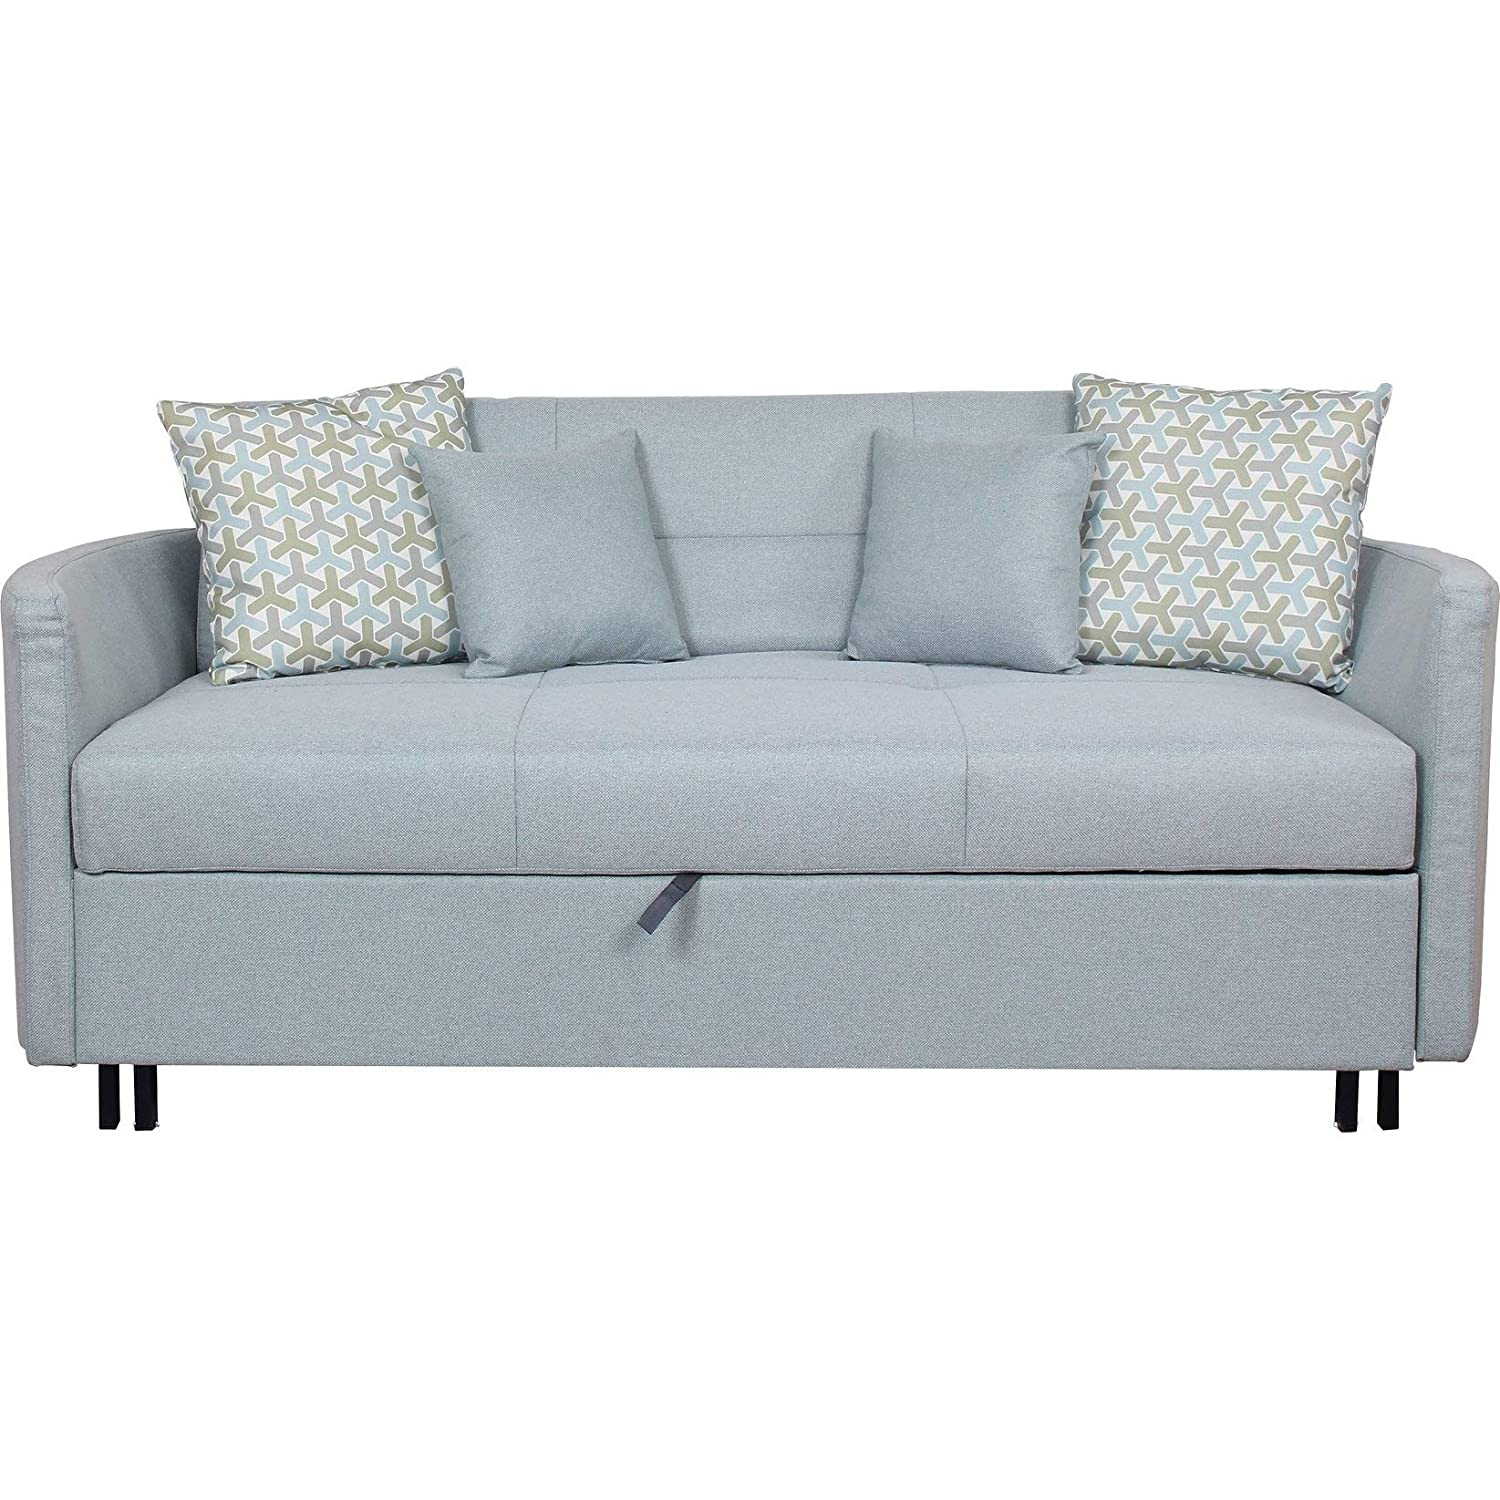 Amazon.com: Overstock Furniture Convertible Sofa with ...